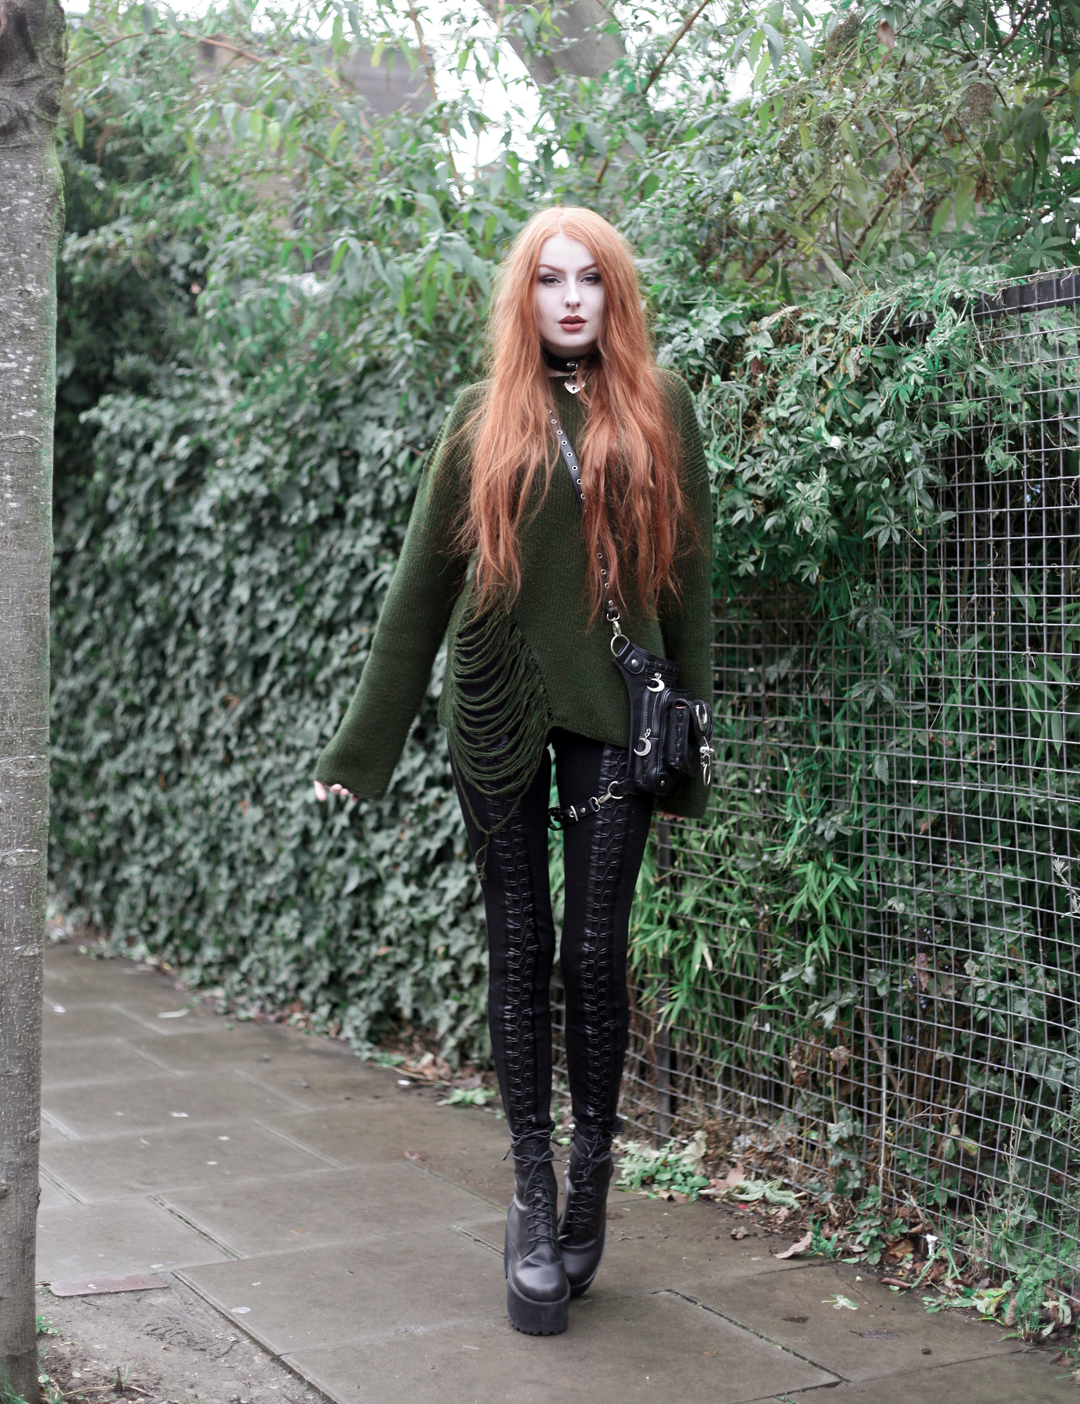 Olivia Emily wears Asos Bones Oversized jumper, Restyle pl harness bag, Stylestalker lace up leggings trousers, and Unif scosche boots